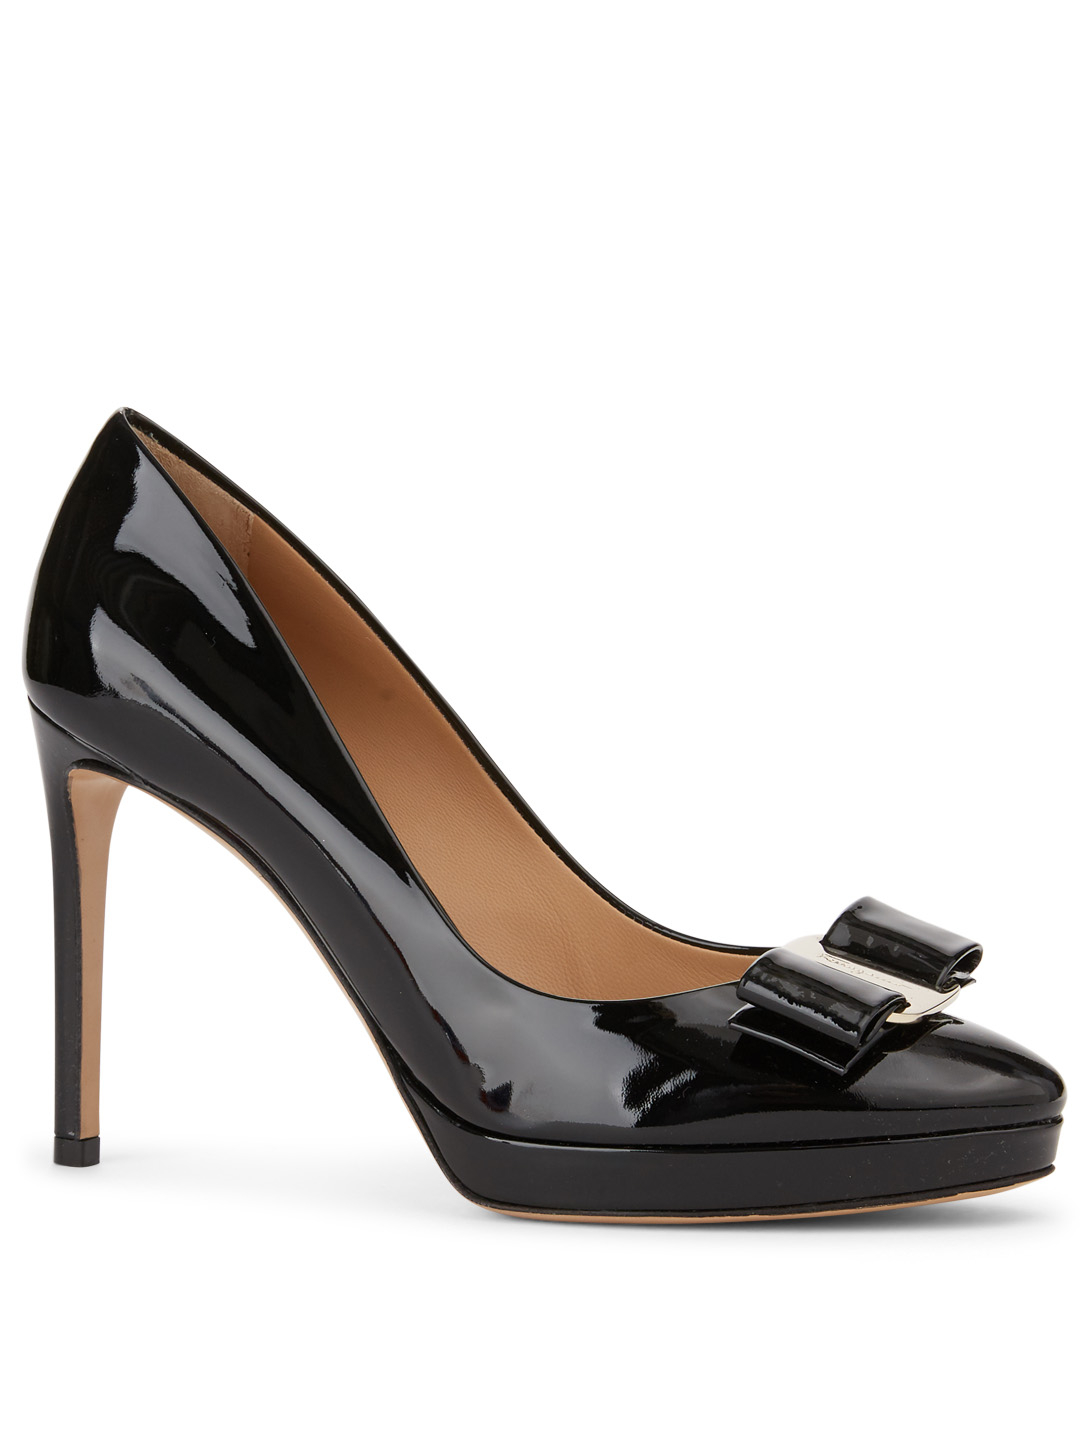 SALVATORE FERRAGAMO Osimo Patent Leather Pumps With Vara Bow Womens Black